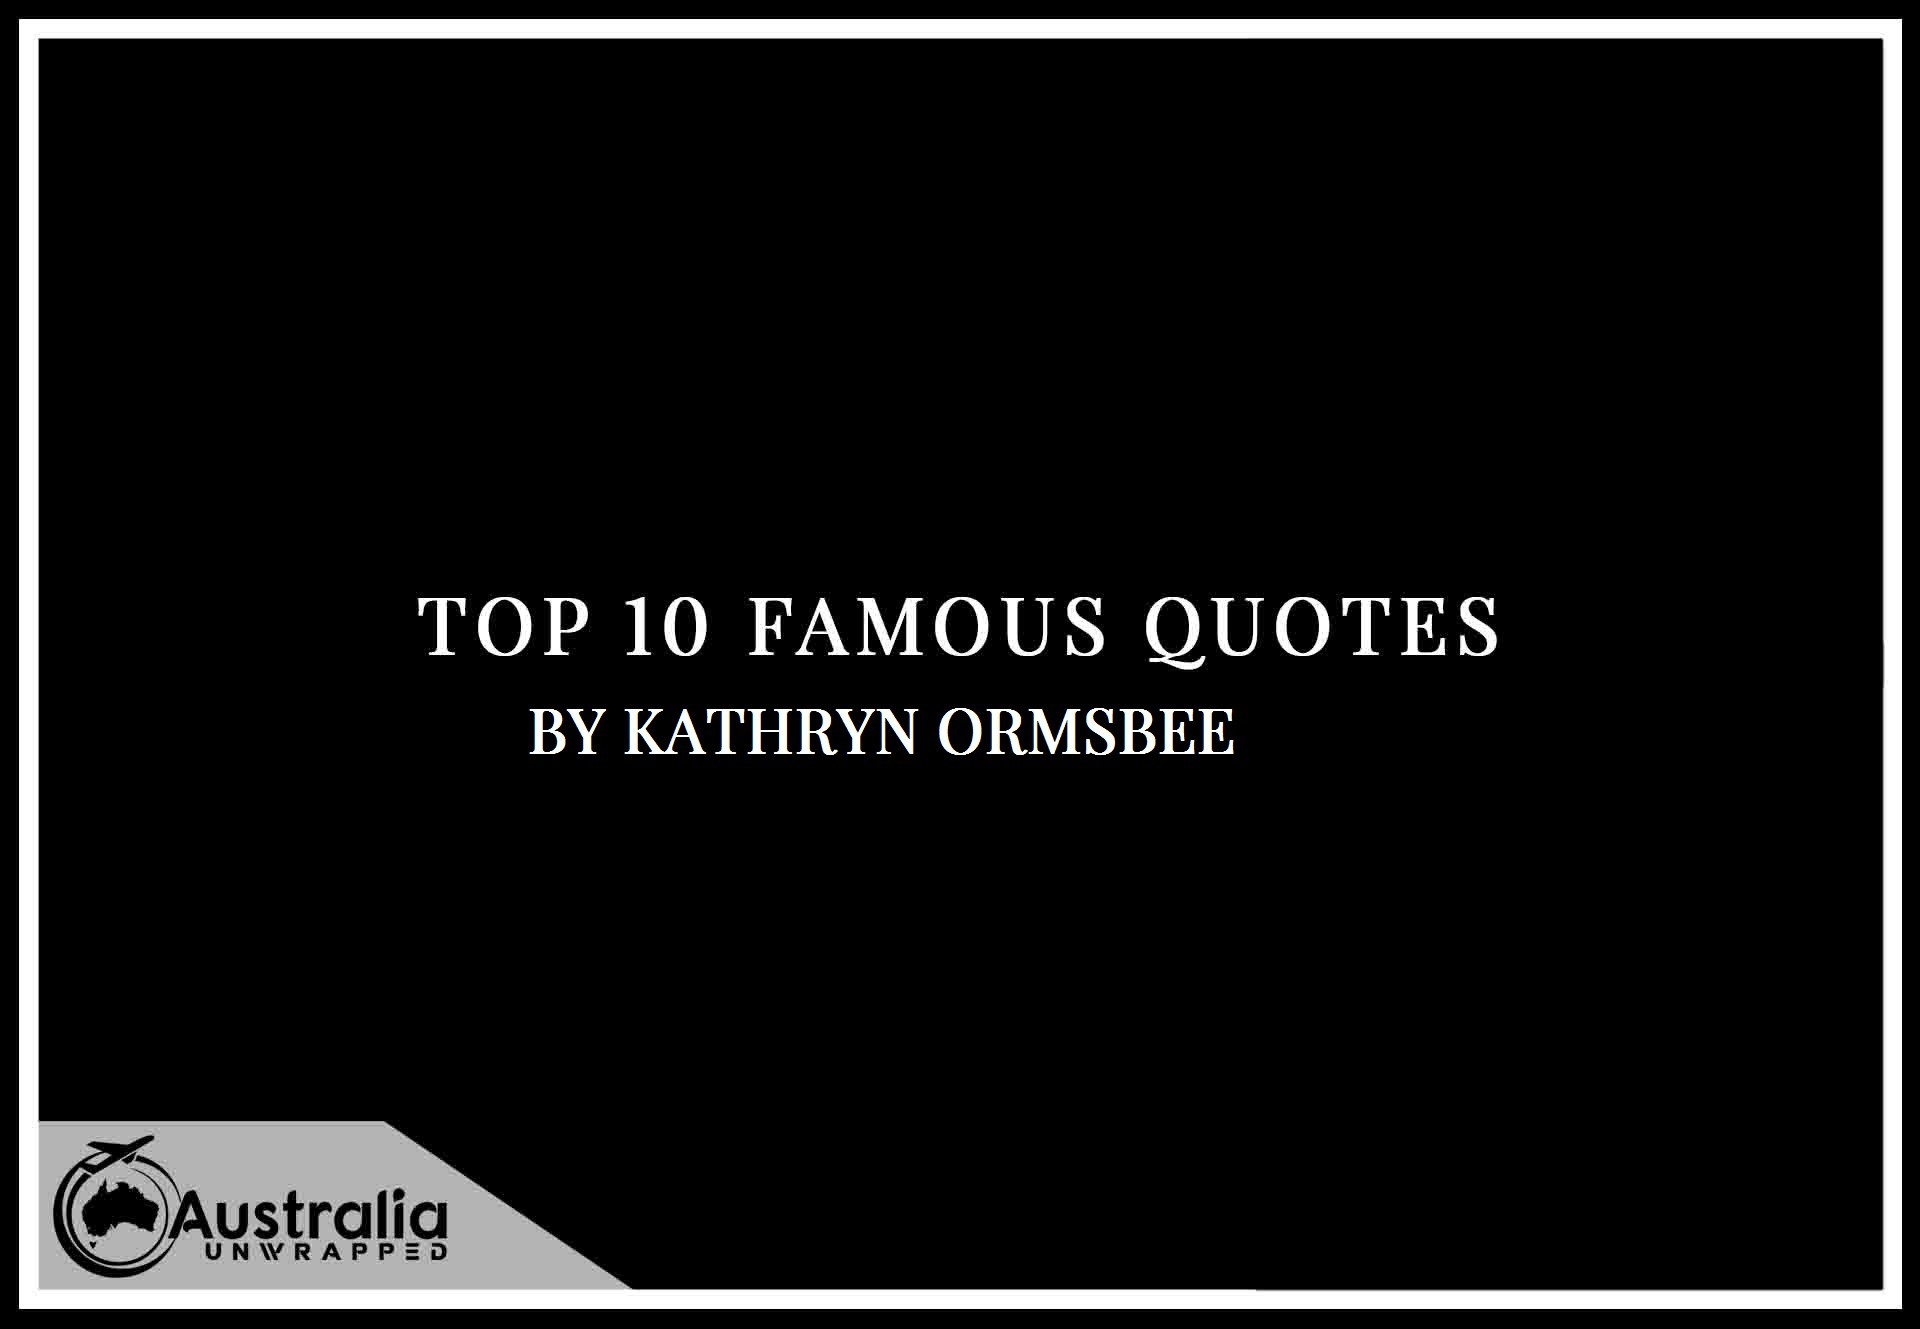 Kathryn Ormsbee's Top 10 Popular and Famous Quotes